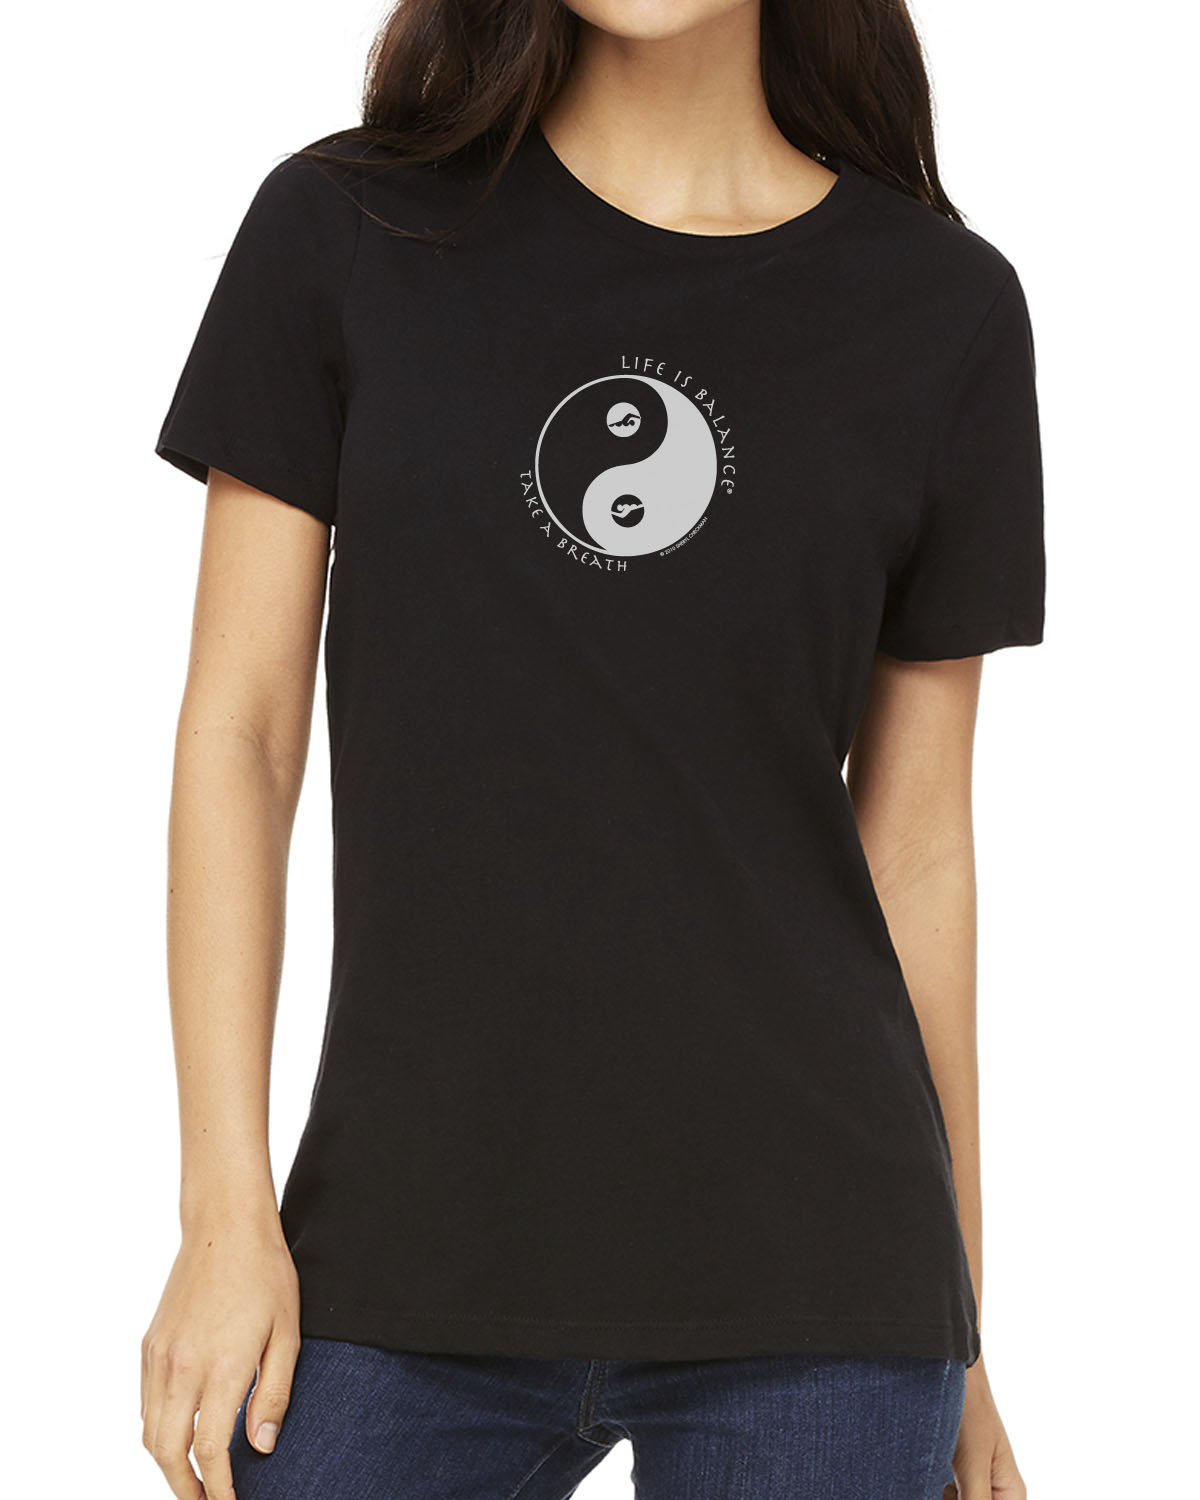 Women's short sleeve t-shirt (black)